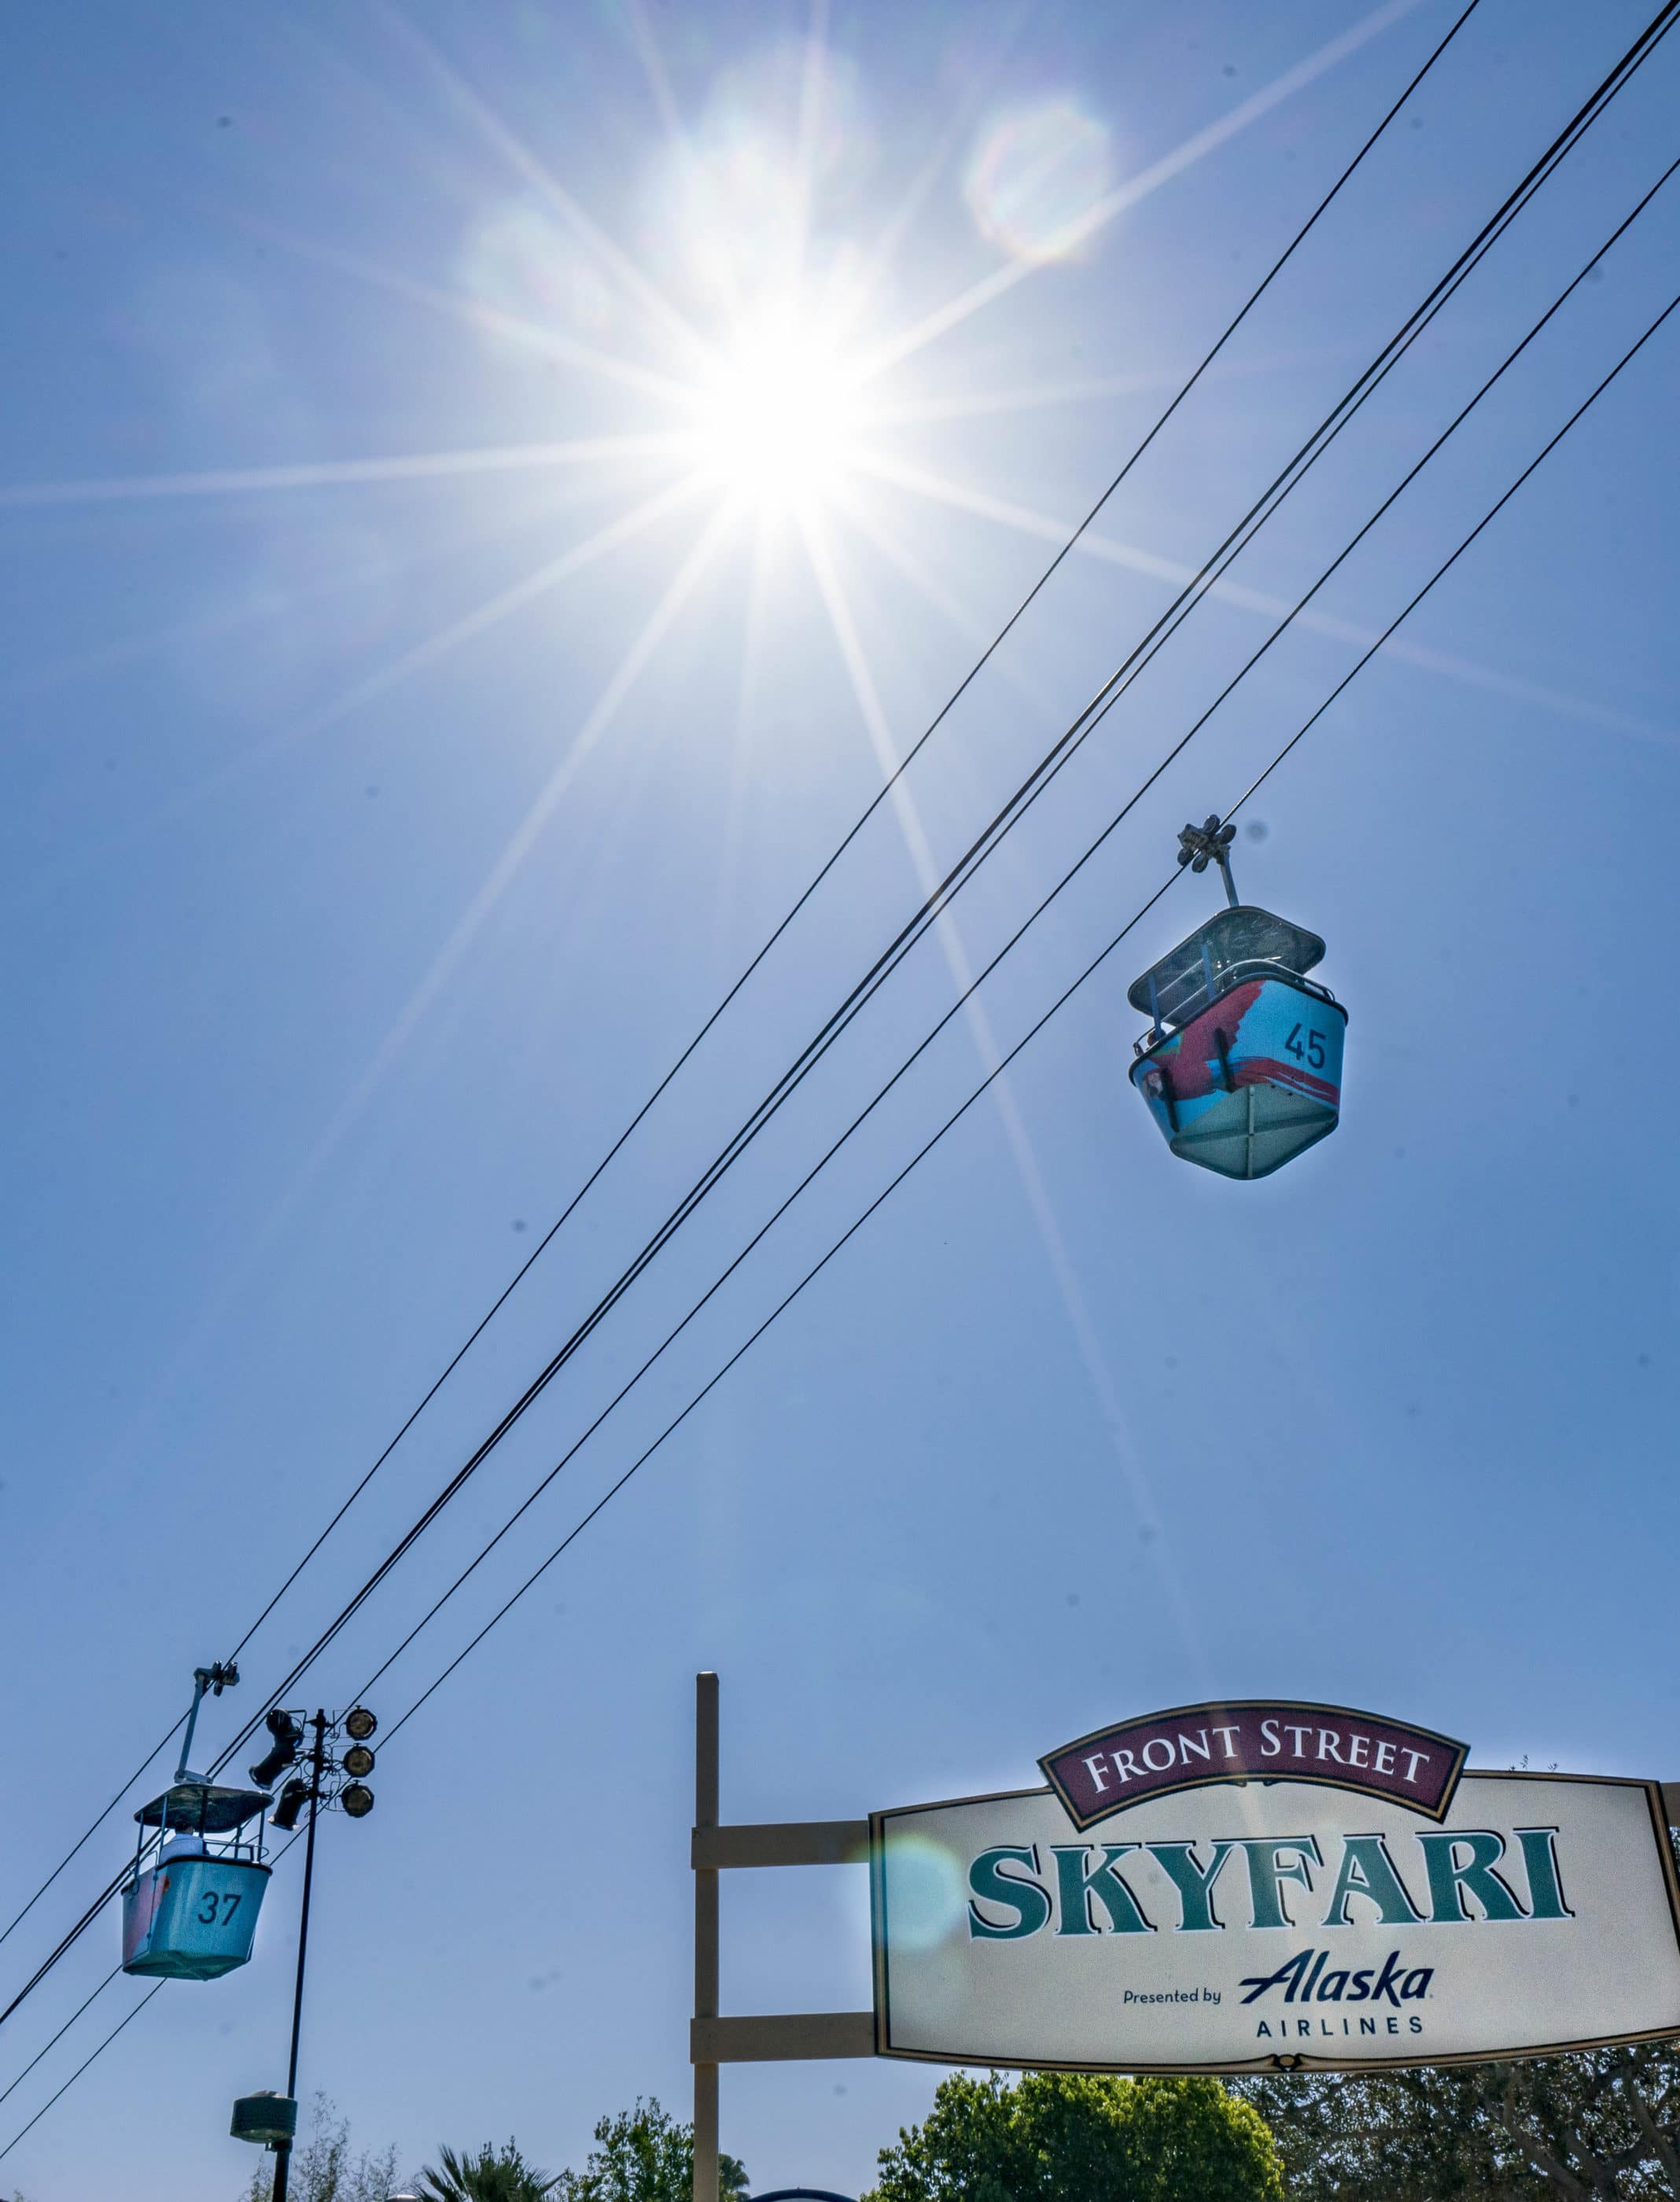 Upward view of two Skyfari aerial trams against a blue morning sky.